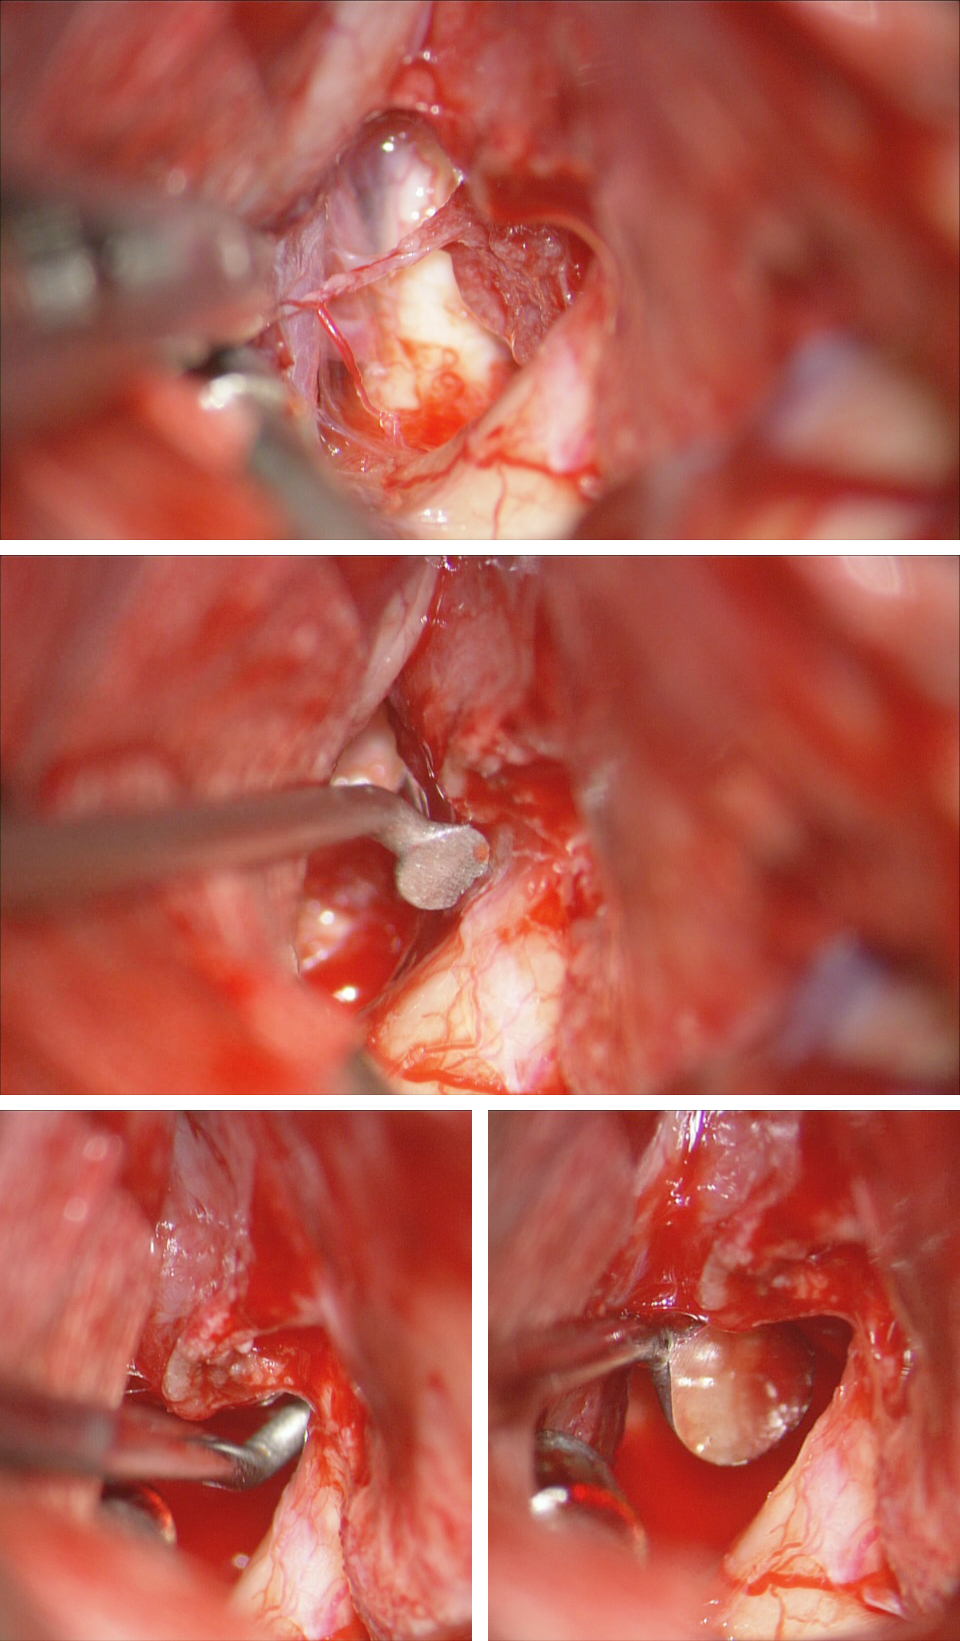 Figure 21: The small perforating vessels to the chiasm are protected (top image) while an angled dissector mobilizes the more intracanalicular portion of the tumor around the medial optic nerve within the operative blind spot (middle image). Angled straight dissector inspects the distal part of the canal to ensure complete decompression of the canal; this finding is also verified using a microsurgical mirror (lower images).